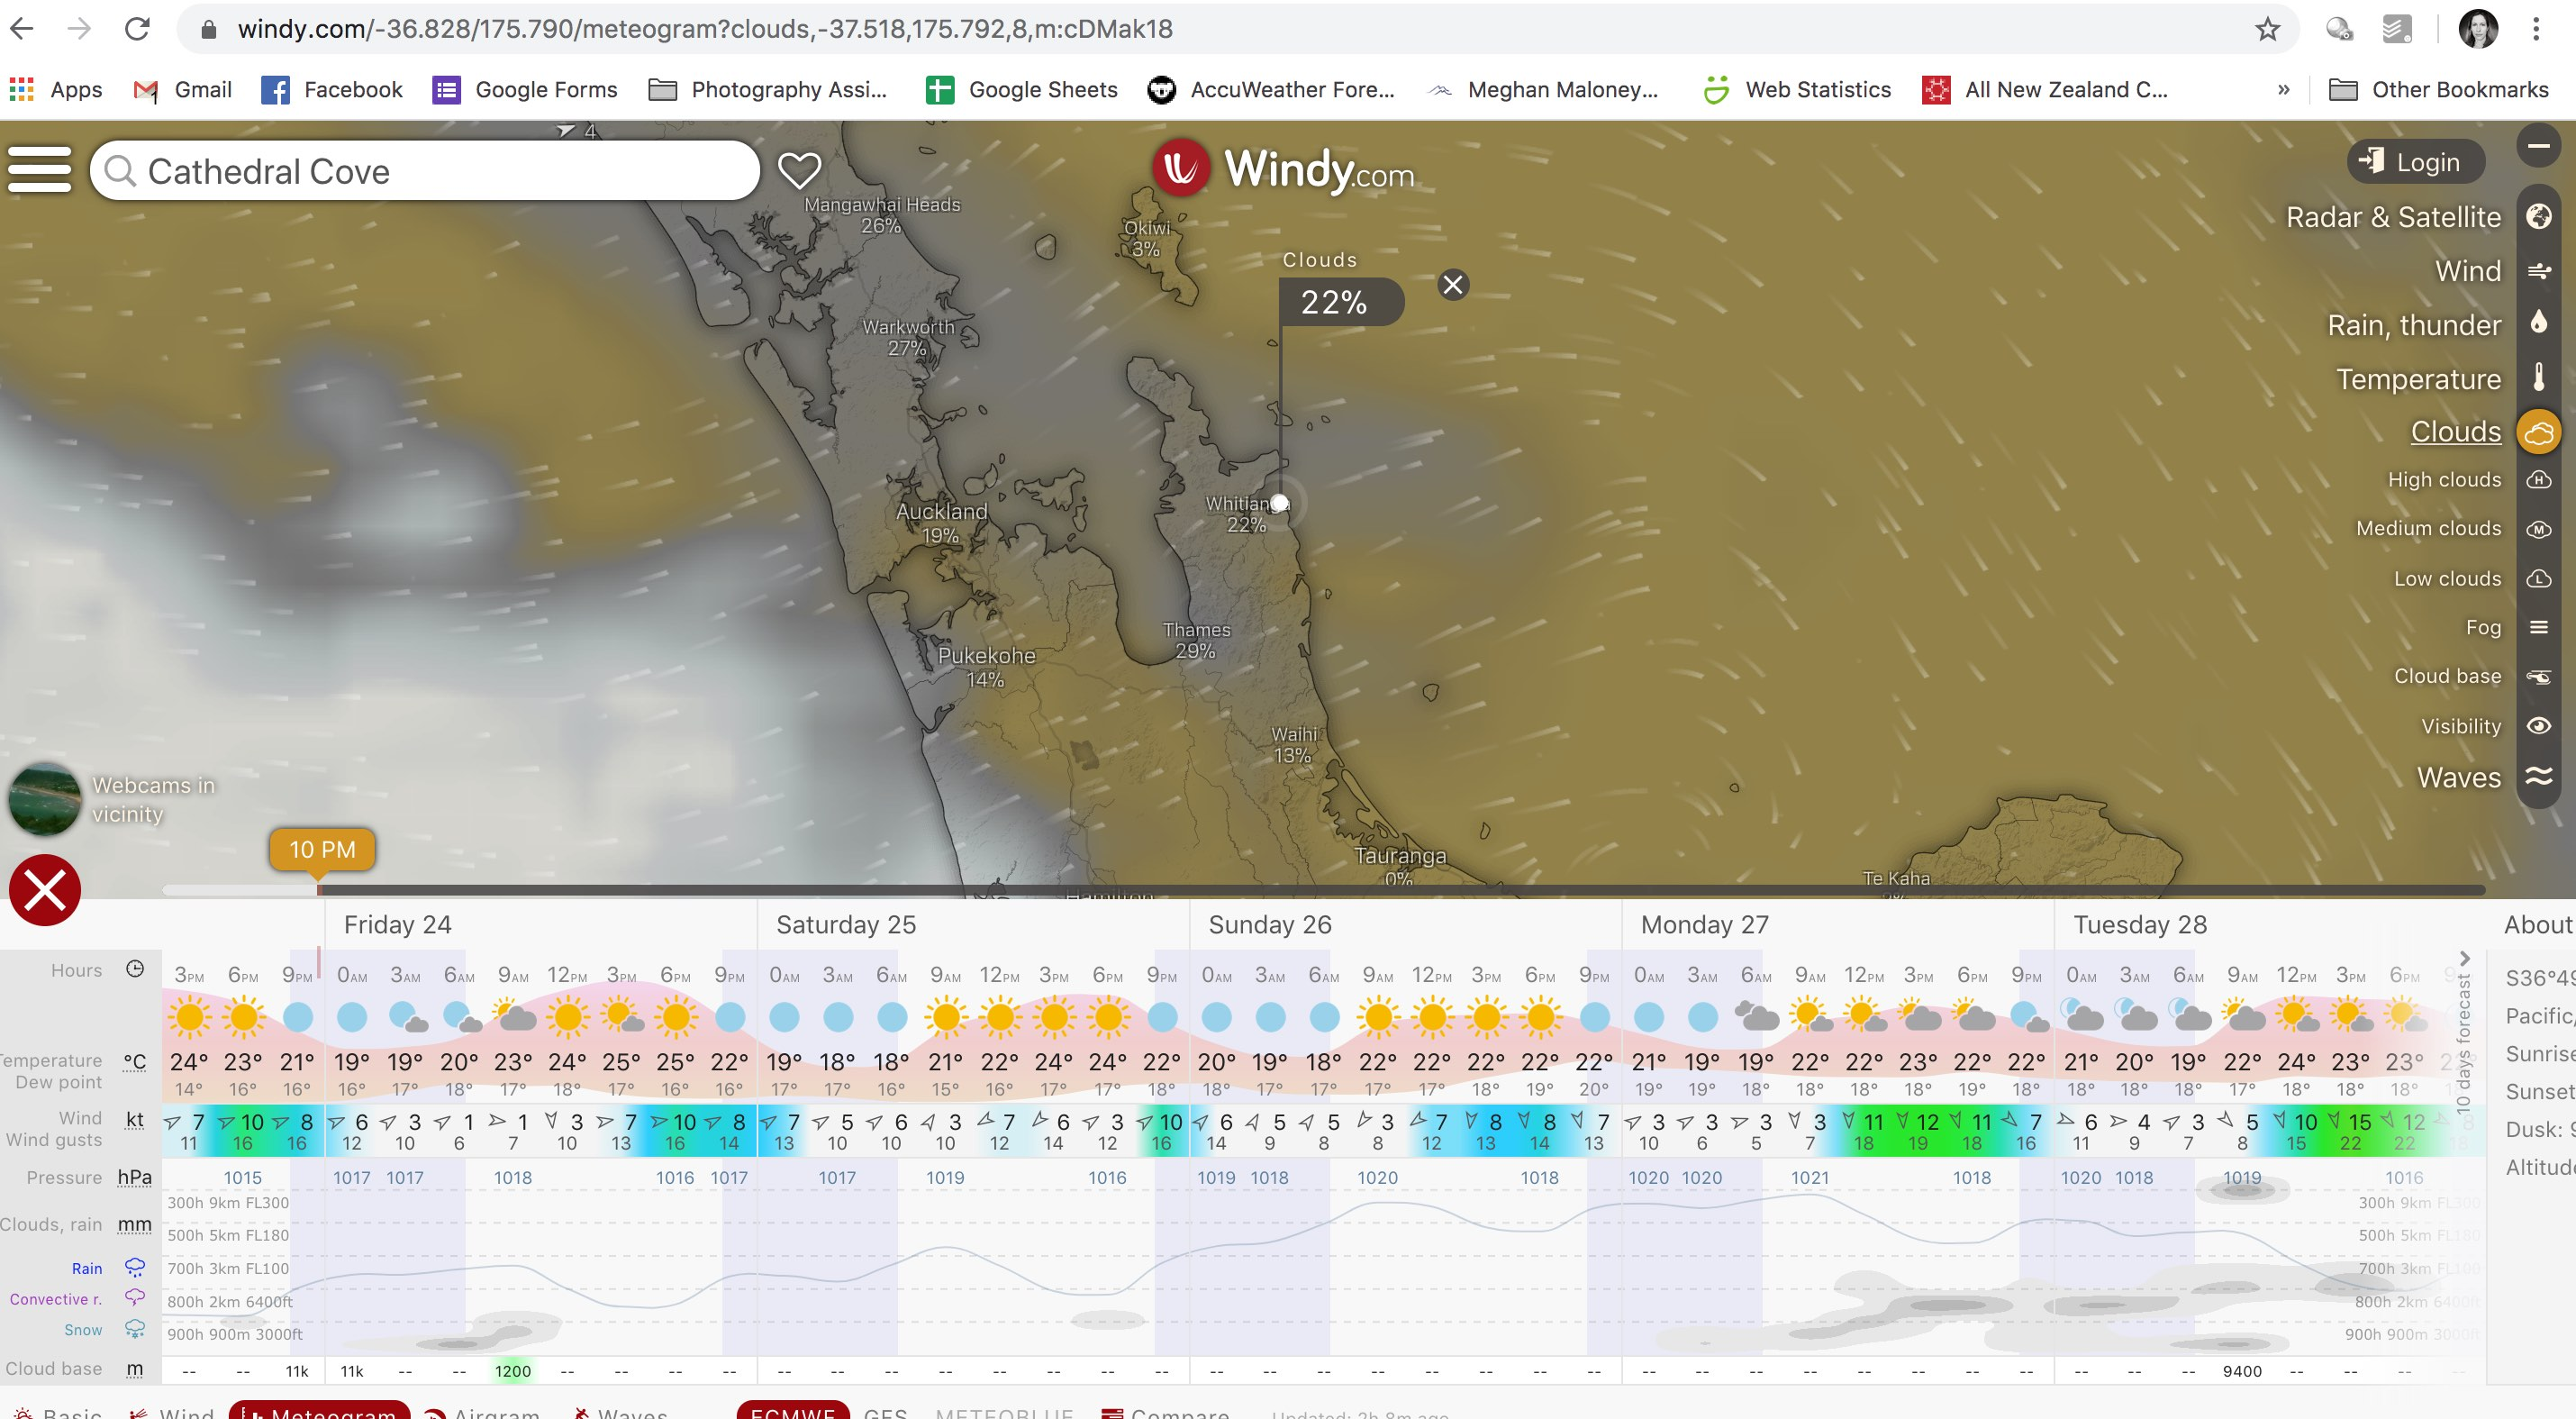 windy.com forecast